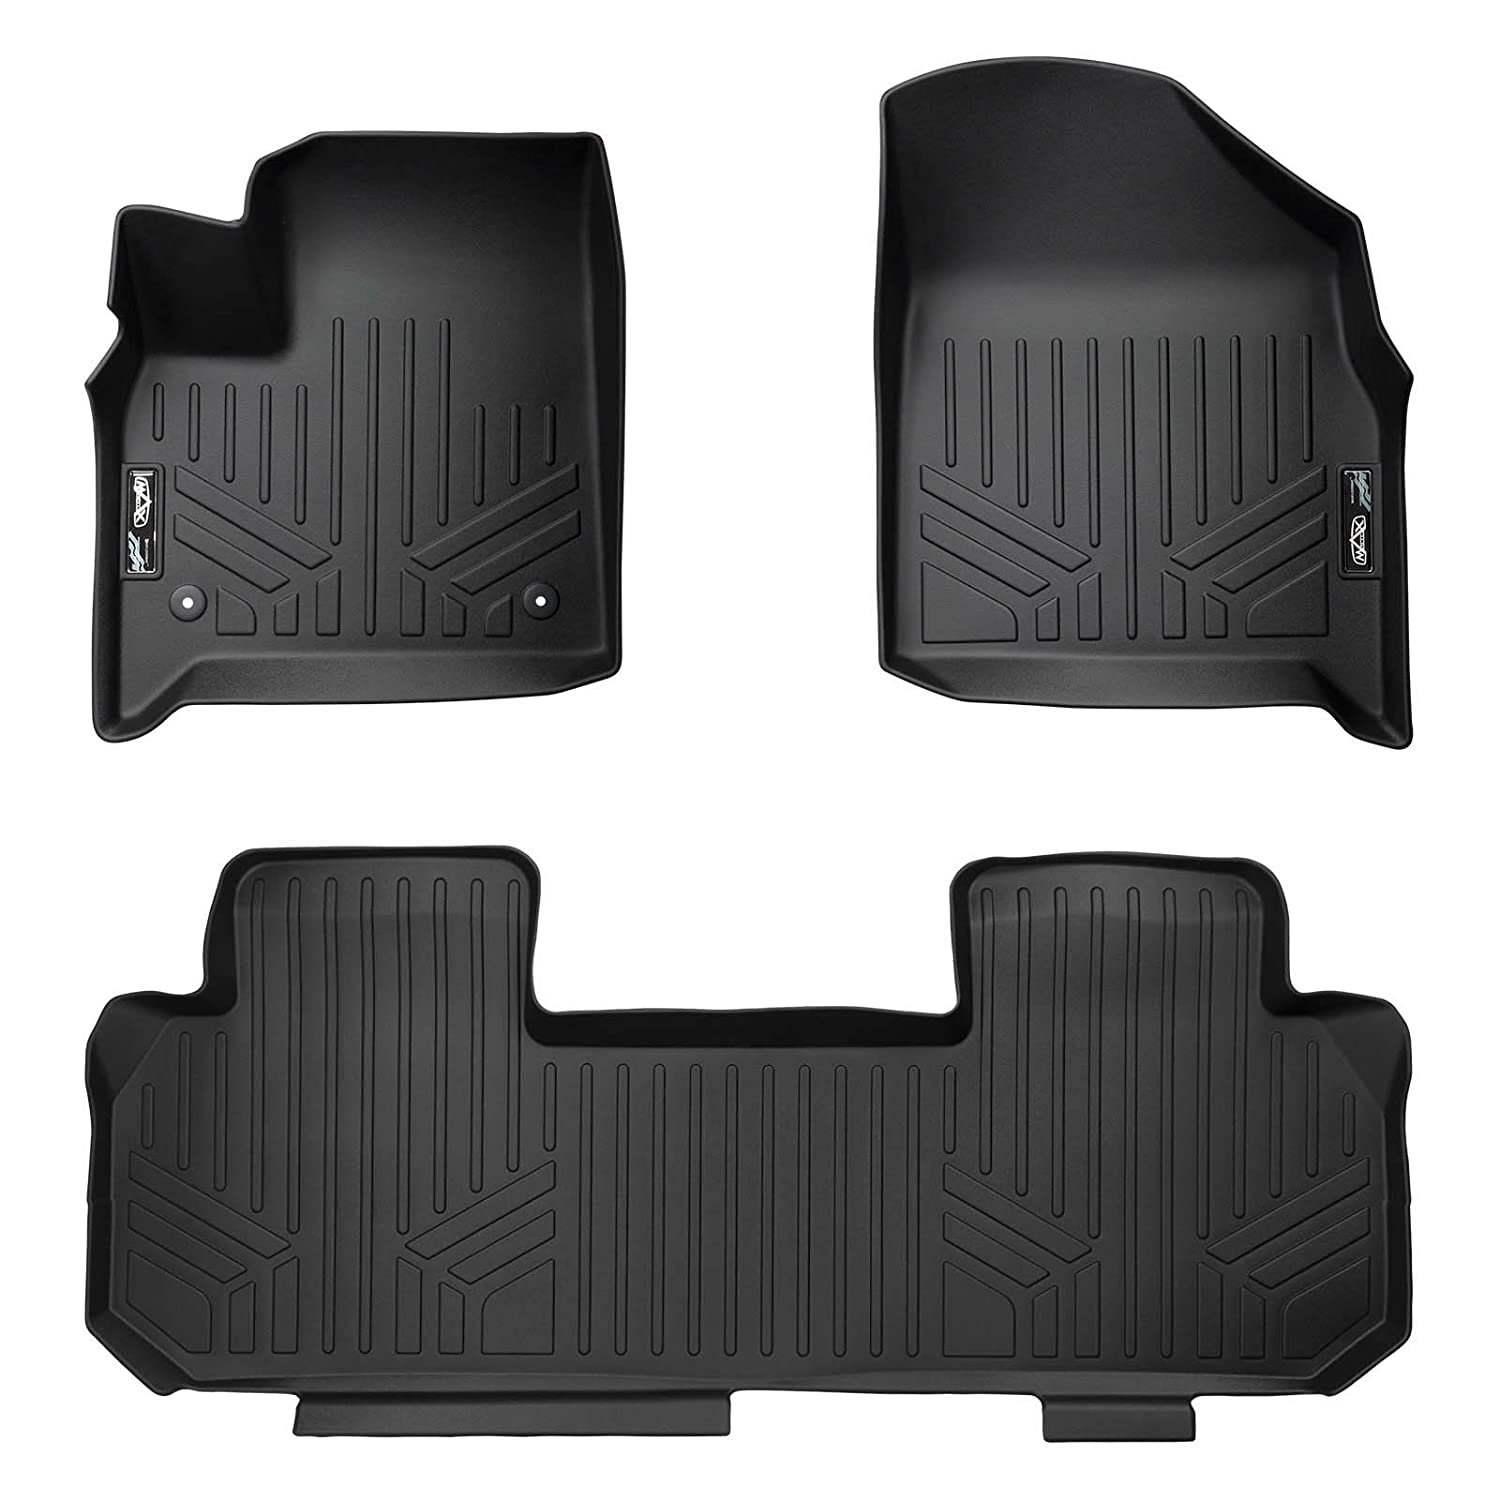 SMARTLINER Floor Mats 2 Row Liner Set Black for 2018-2019 Chevrolet Traverse with 2nd Row Bench Seat MAXLINER A0343//B0343